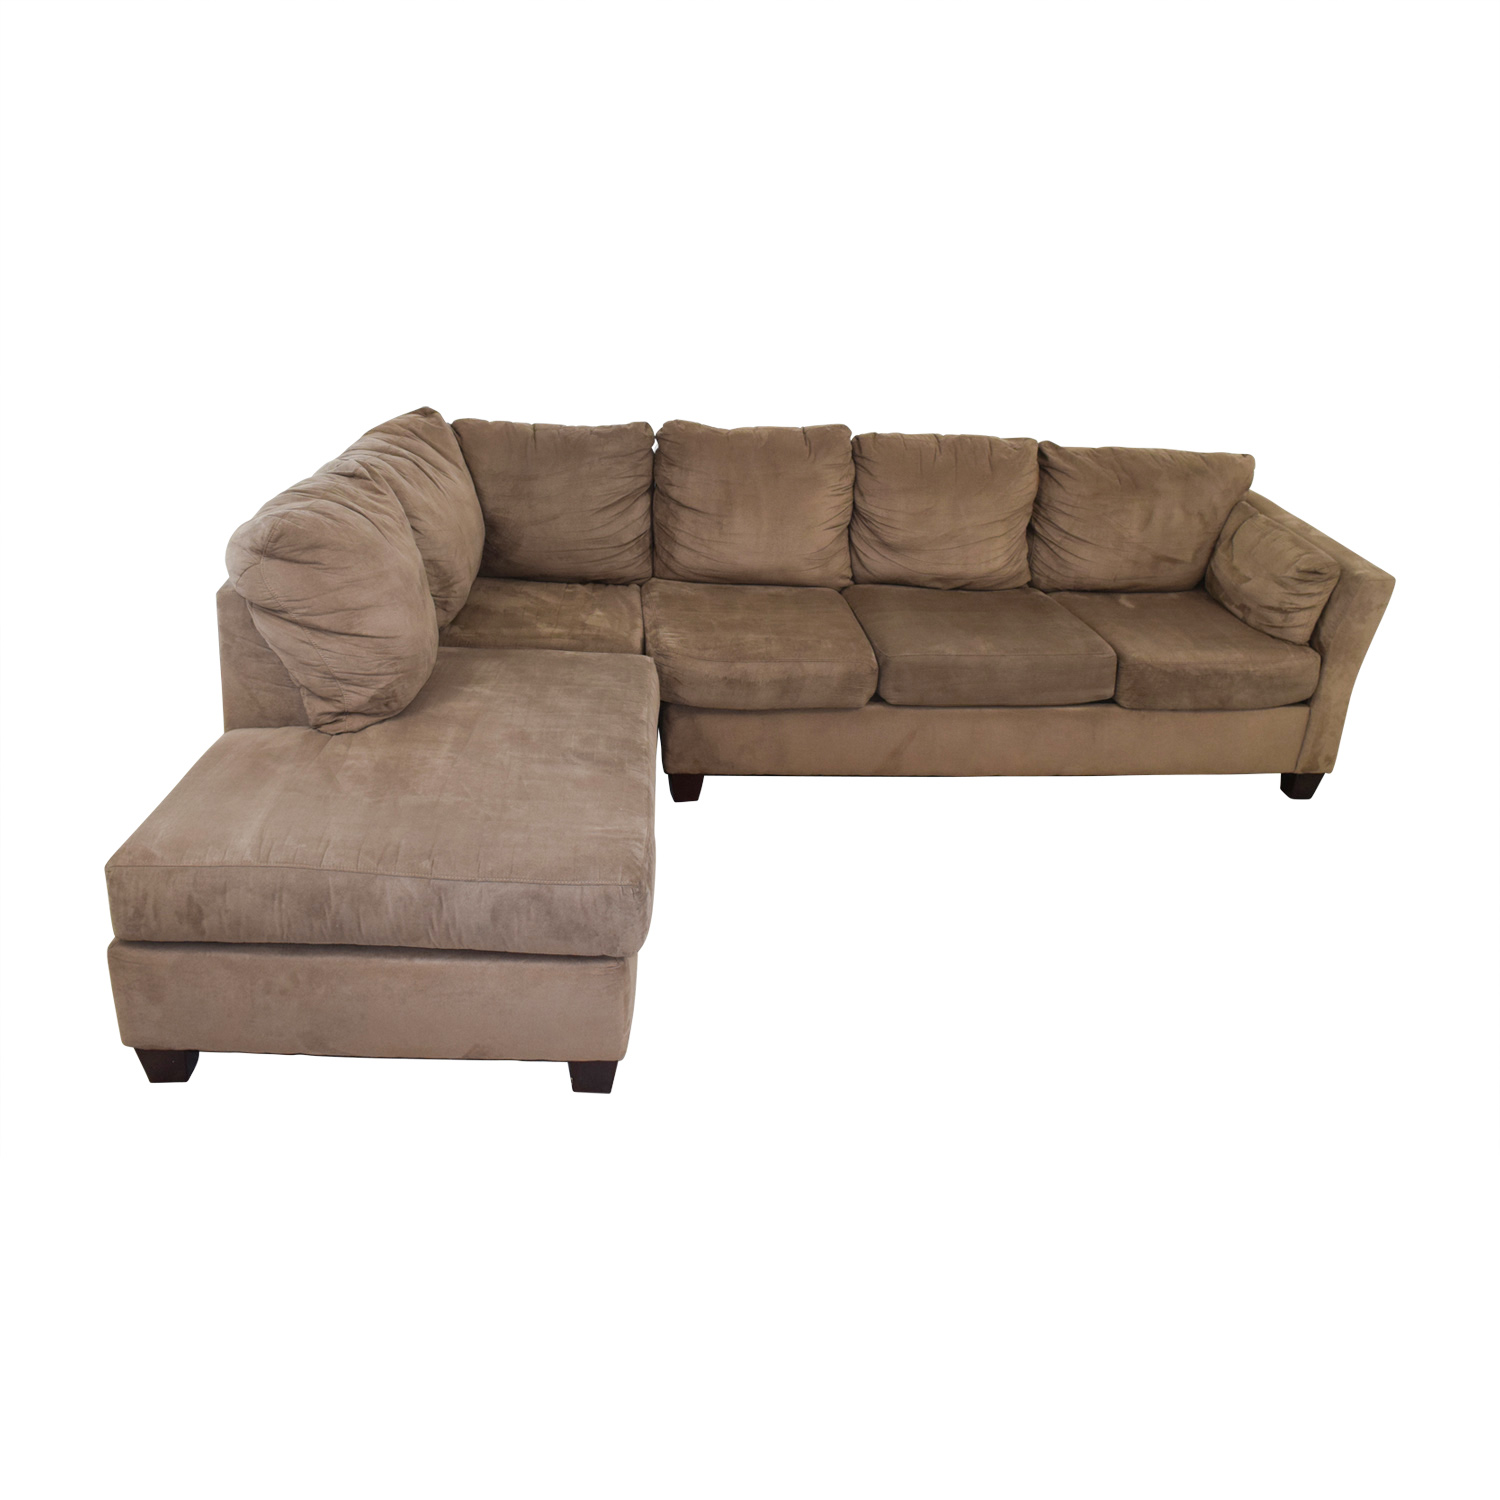 shop Bobs Furniture Bobs Furniture Brown Microfiber Sectional online